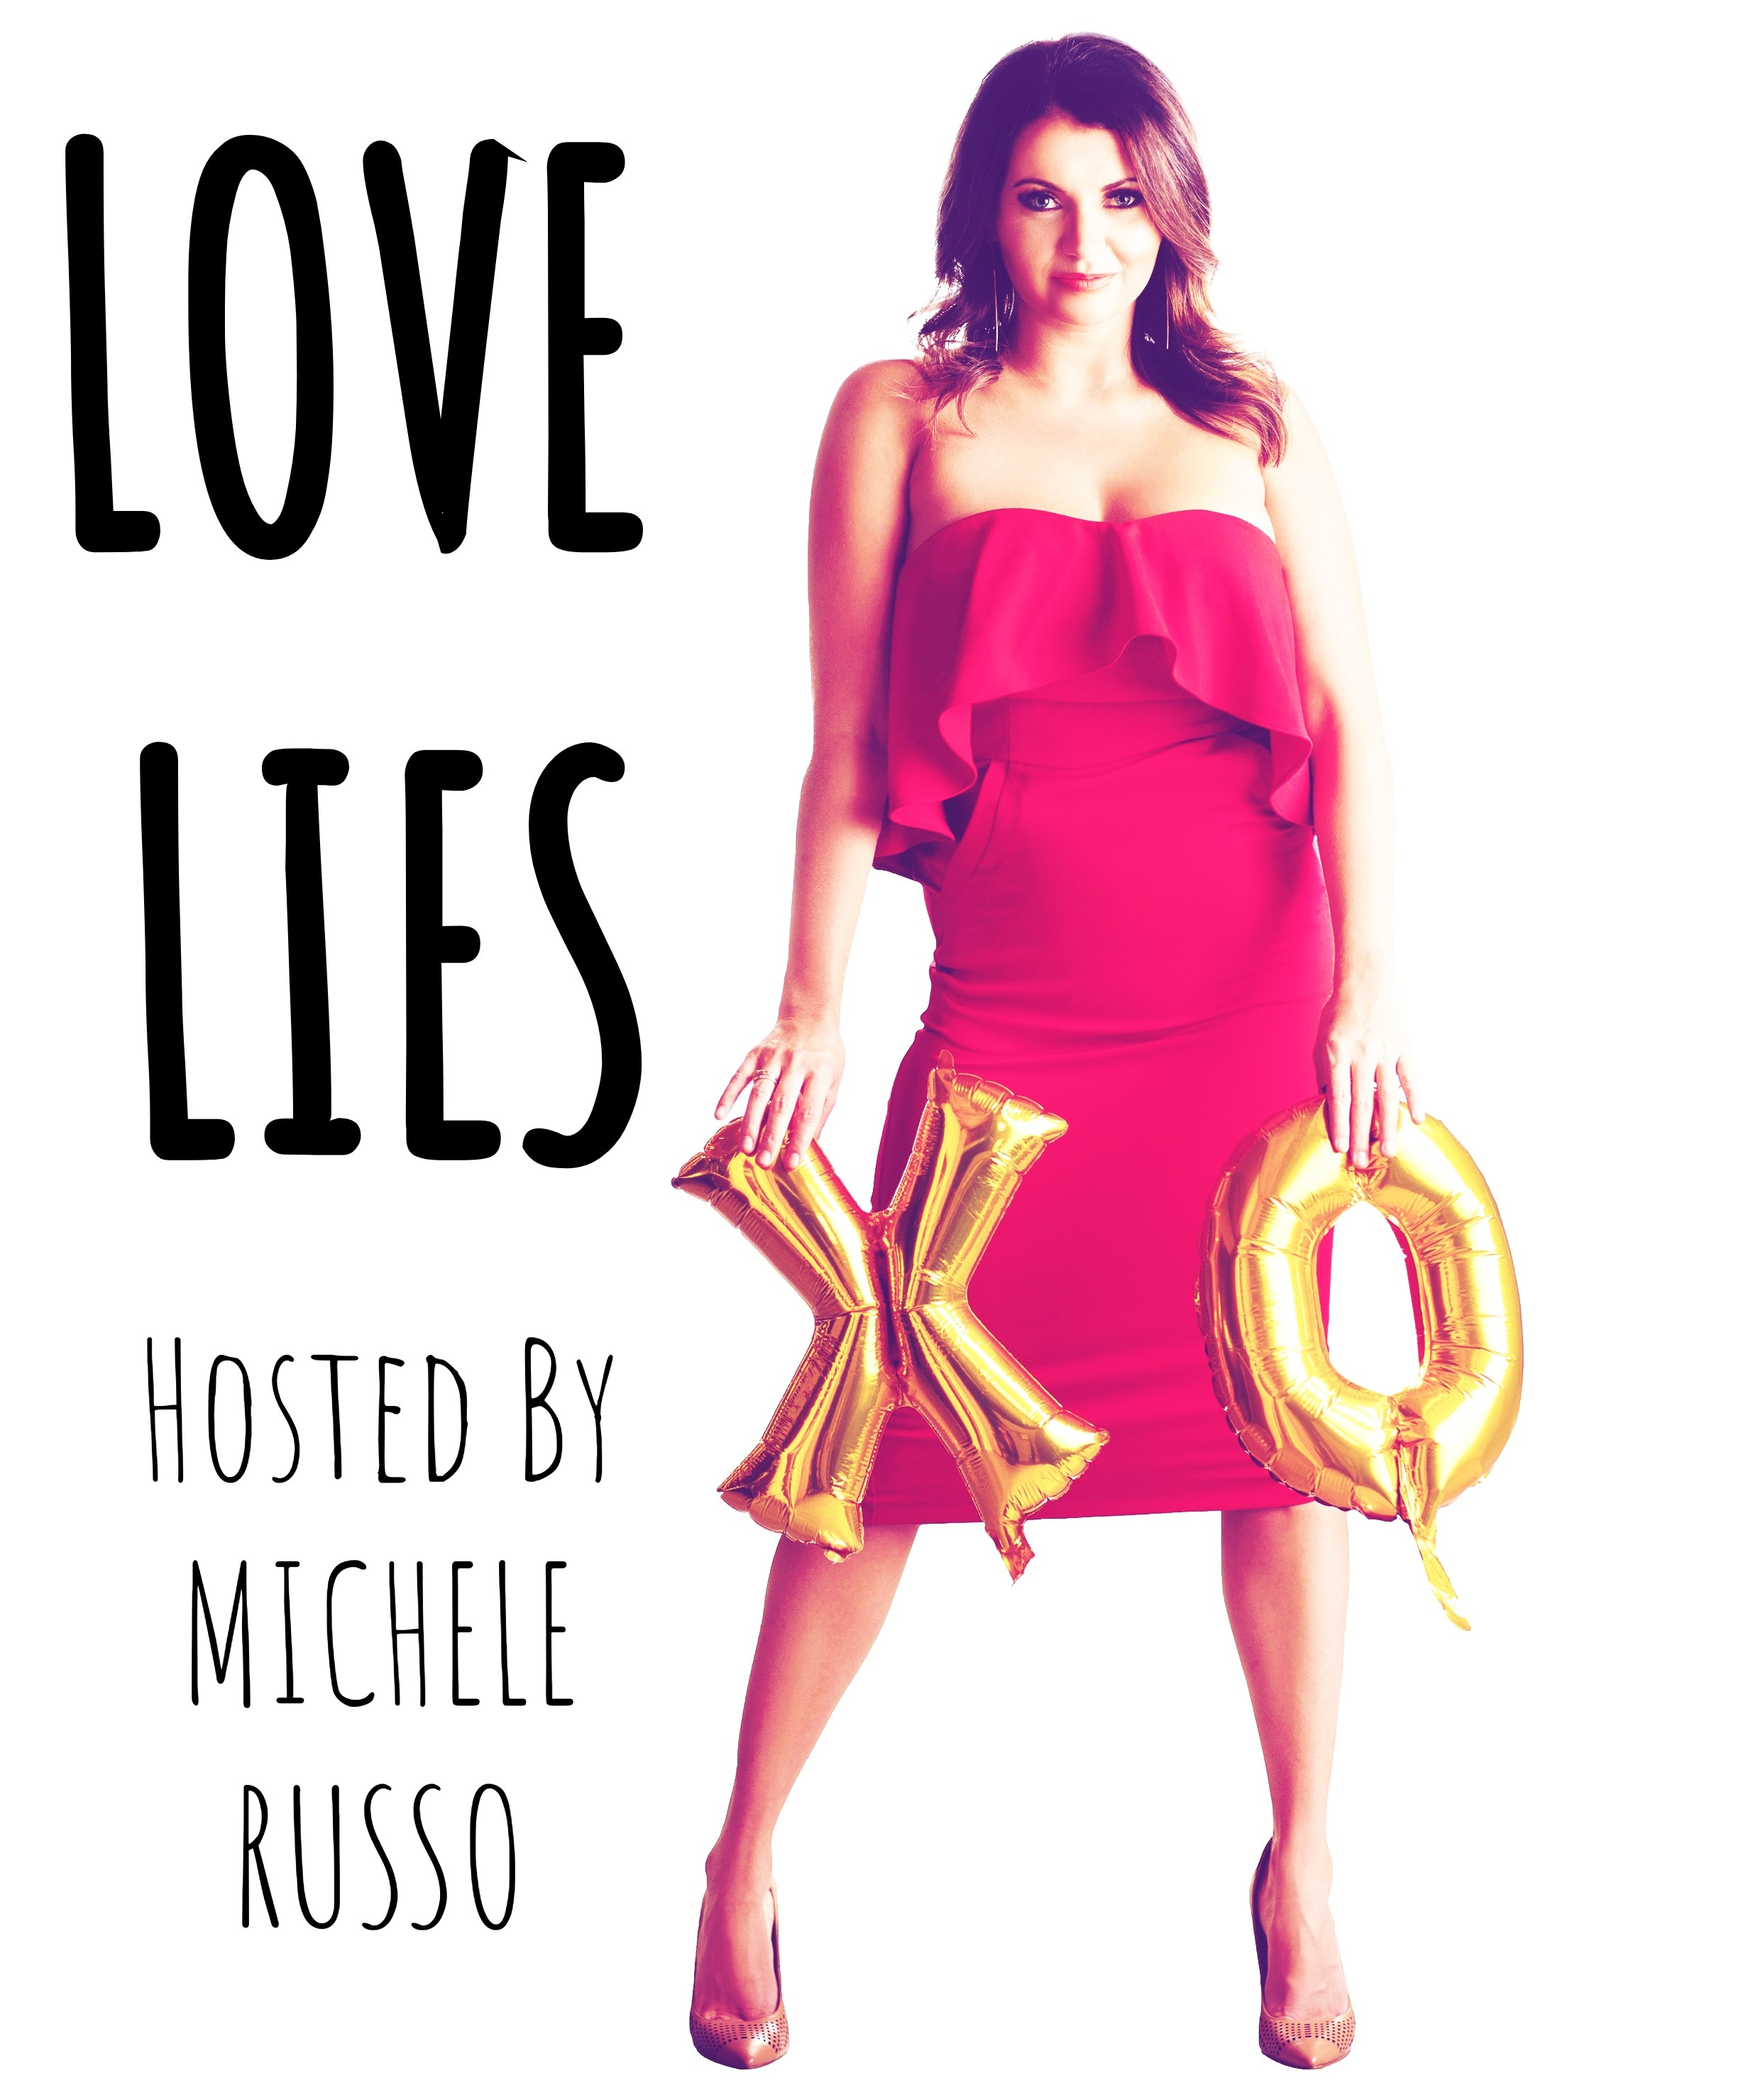 Love Lies with Michele Russo